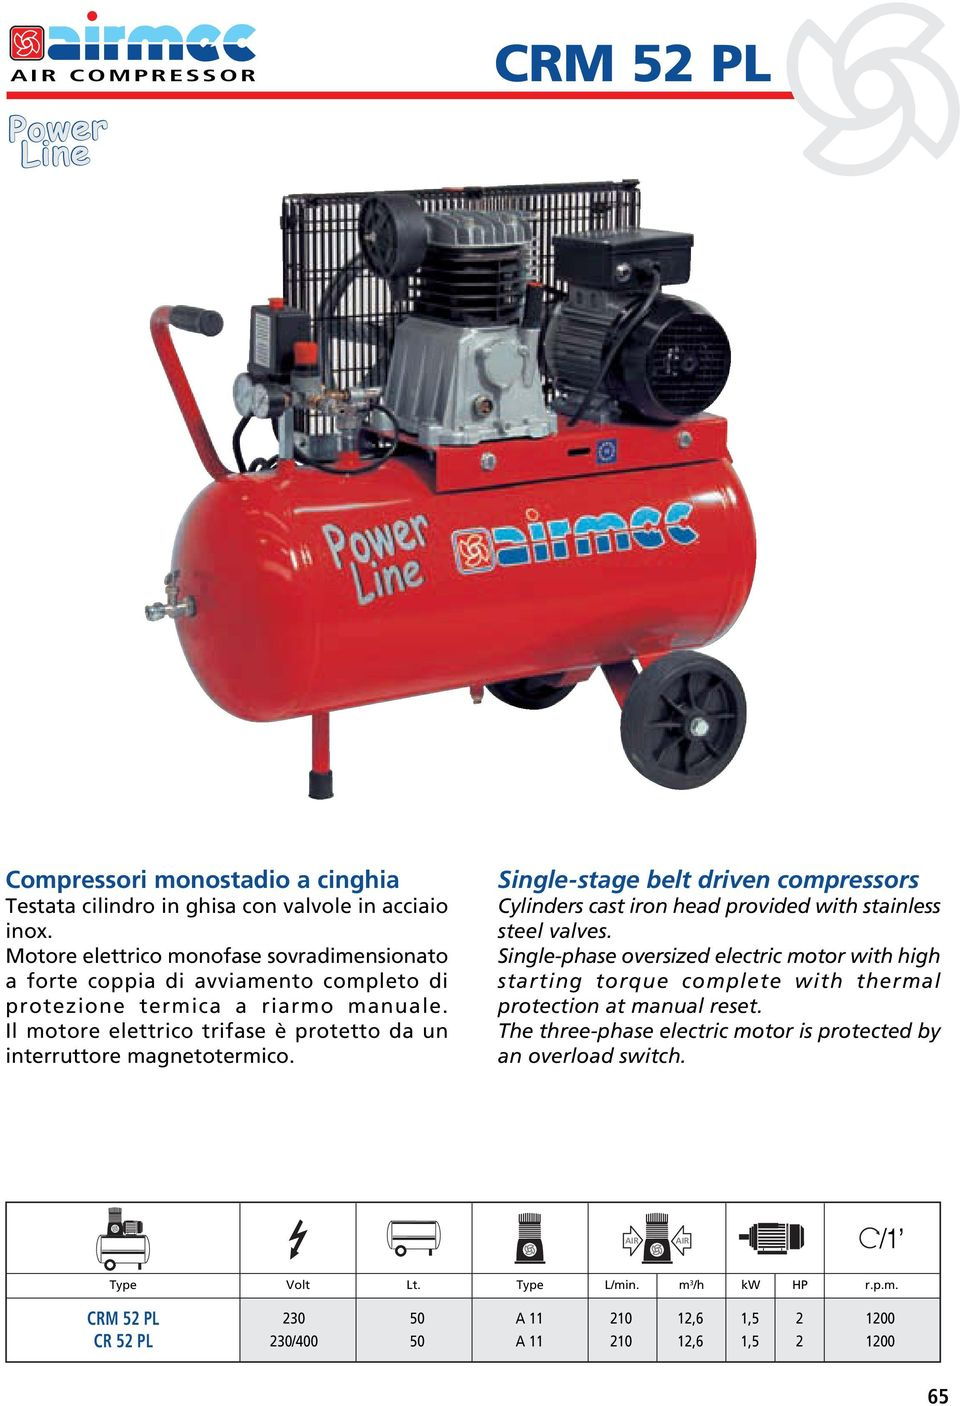 Il motore elettrico trifase è protetto da un interruttore magnetotermico. Single-stage belt driven compressors Cylinders cast iron head provided with stainless steel valves.